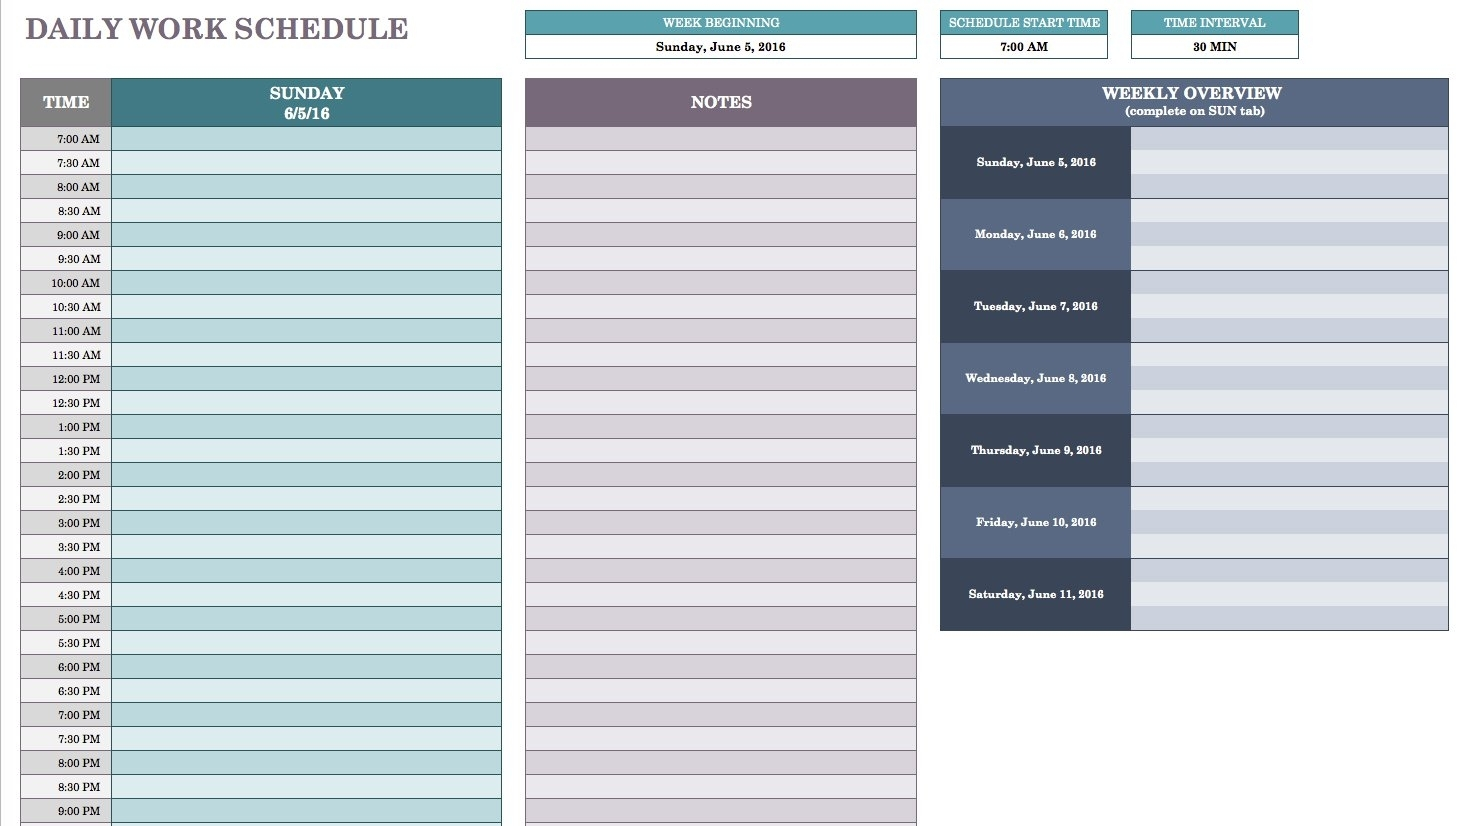 Free Daily Schedule Templates For Excel Smartsheet Ner Template intended for Schedule At A Glance Template